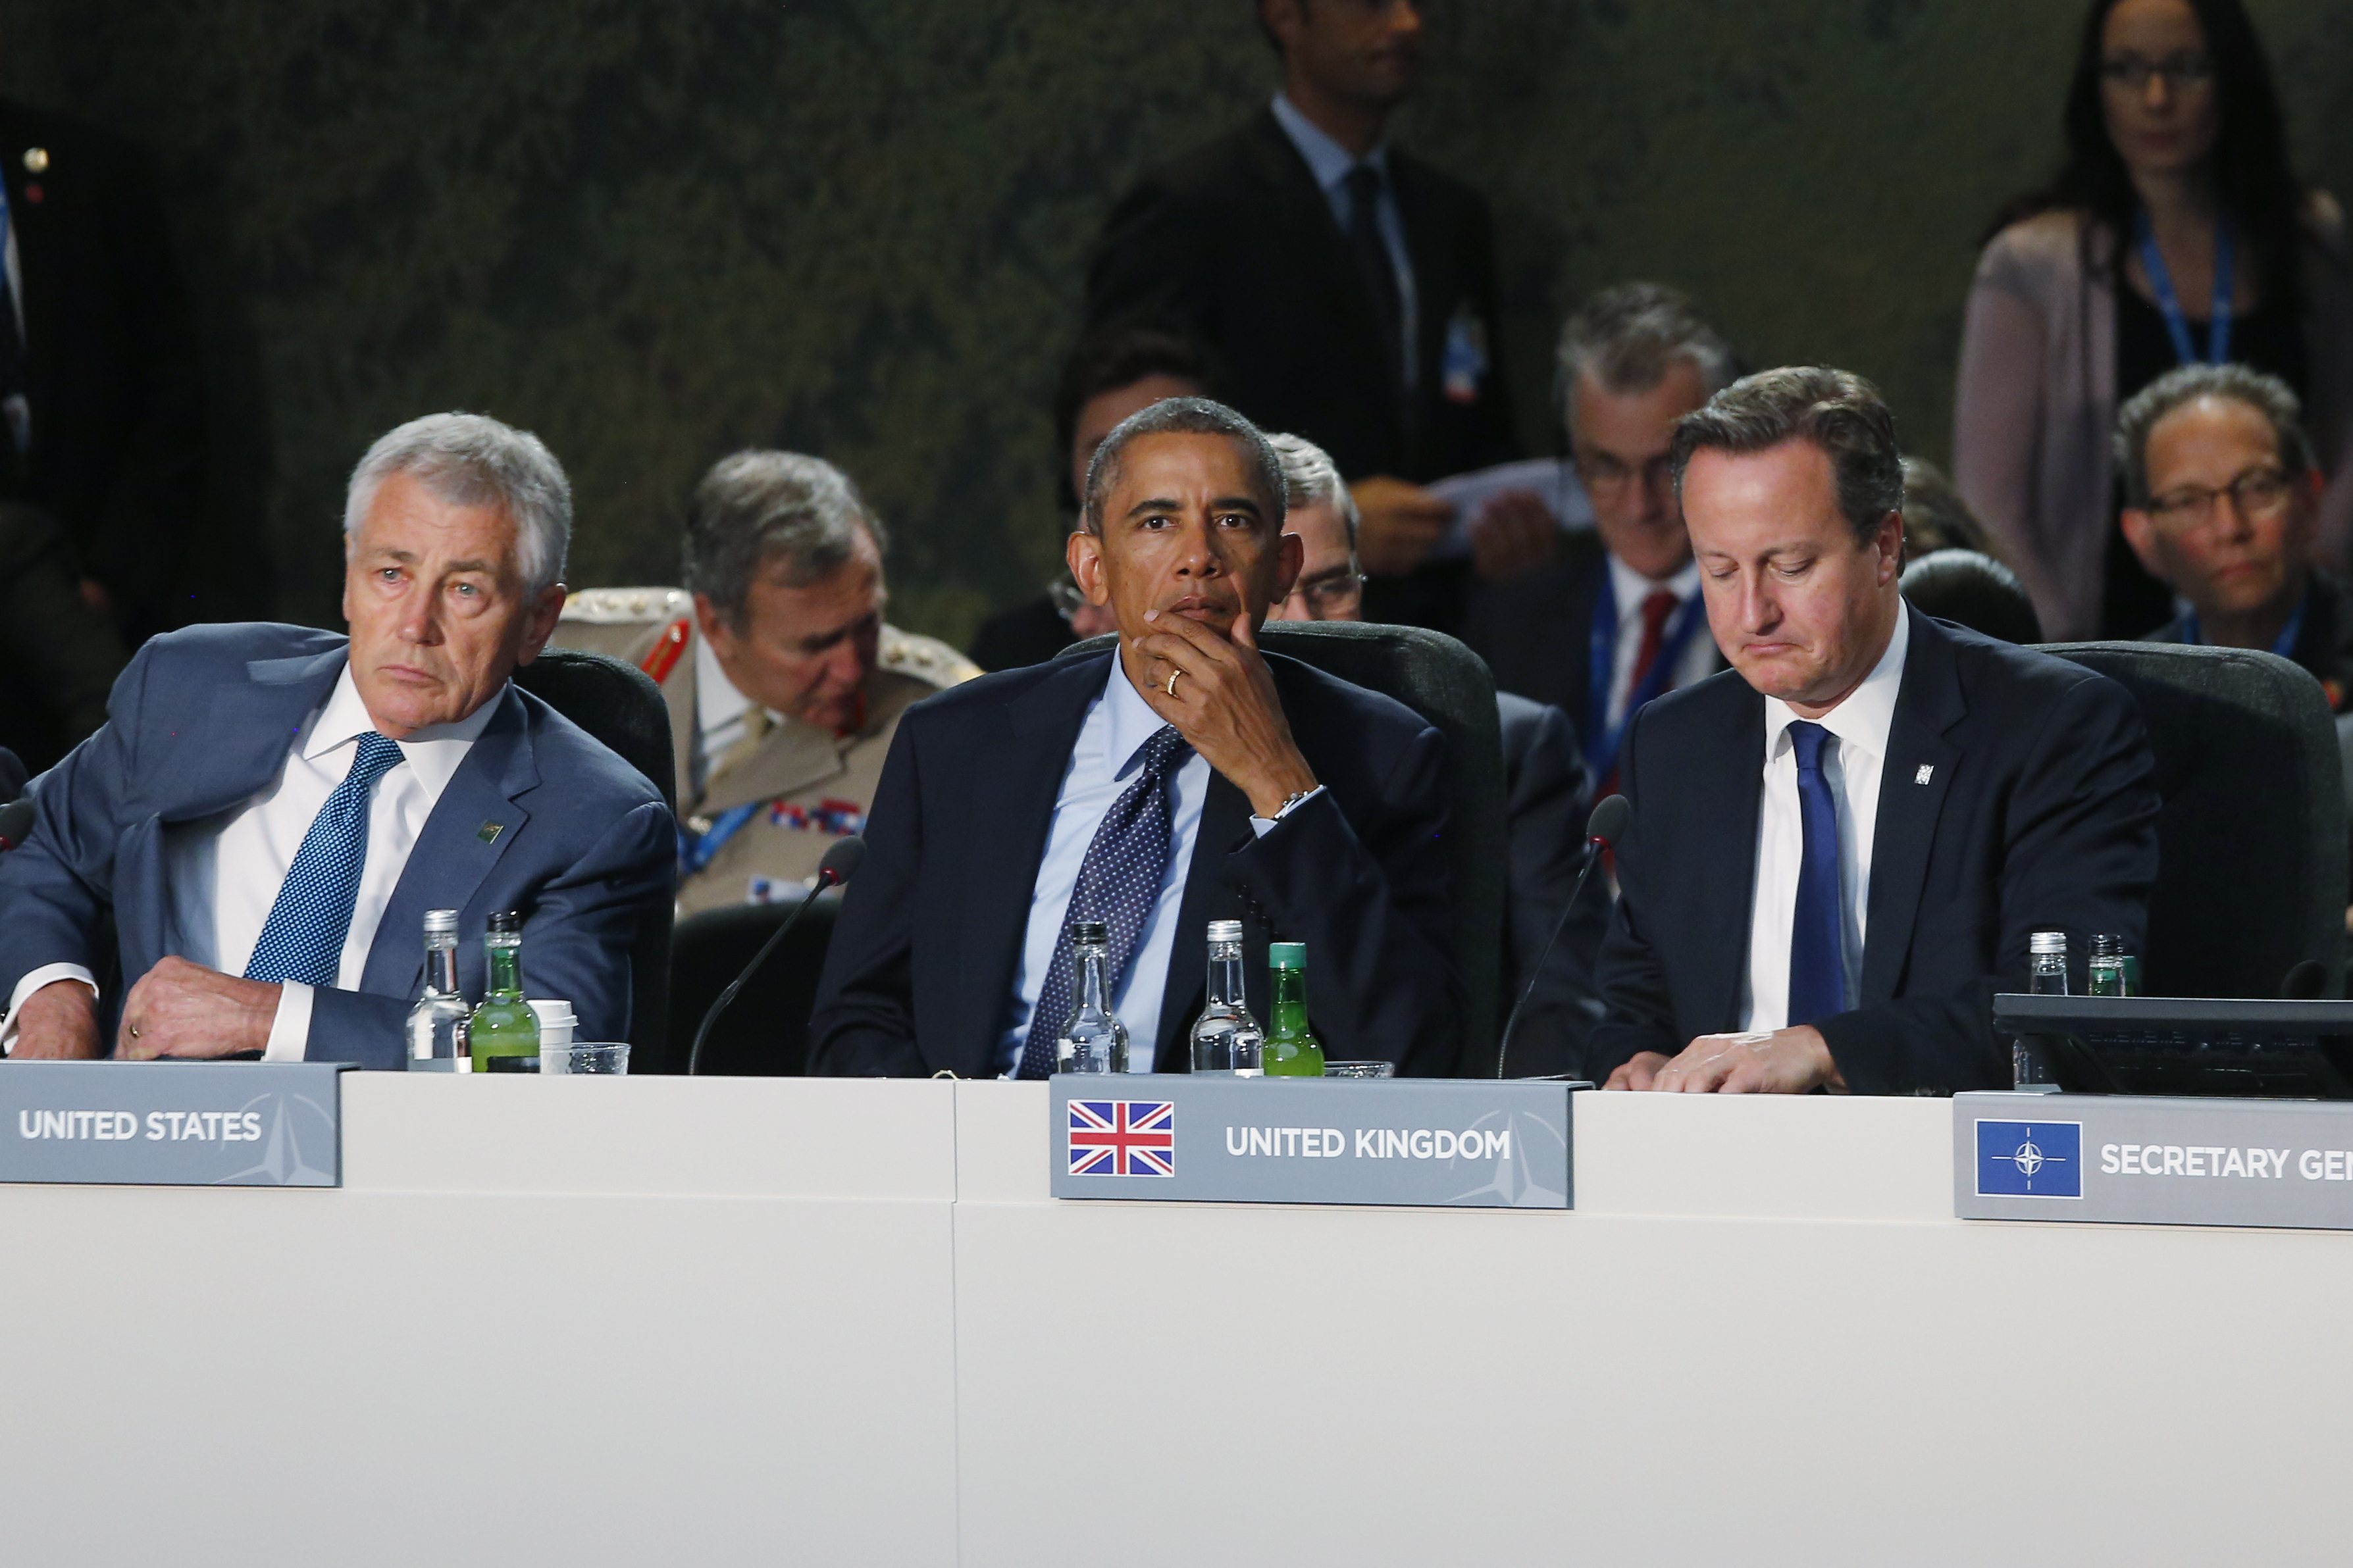 U.S. President Barack Obama, center, U.S. Secretary of Defense Chuck Hagel , left, and British Prime Minister David Cameron are seated during a leaders meeting on the future of NATO at Celtic Manor in Newport, Wales, Friday, Sept. 5, 2014.